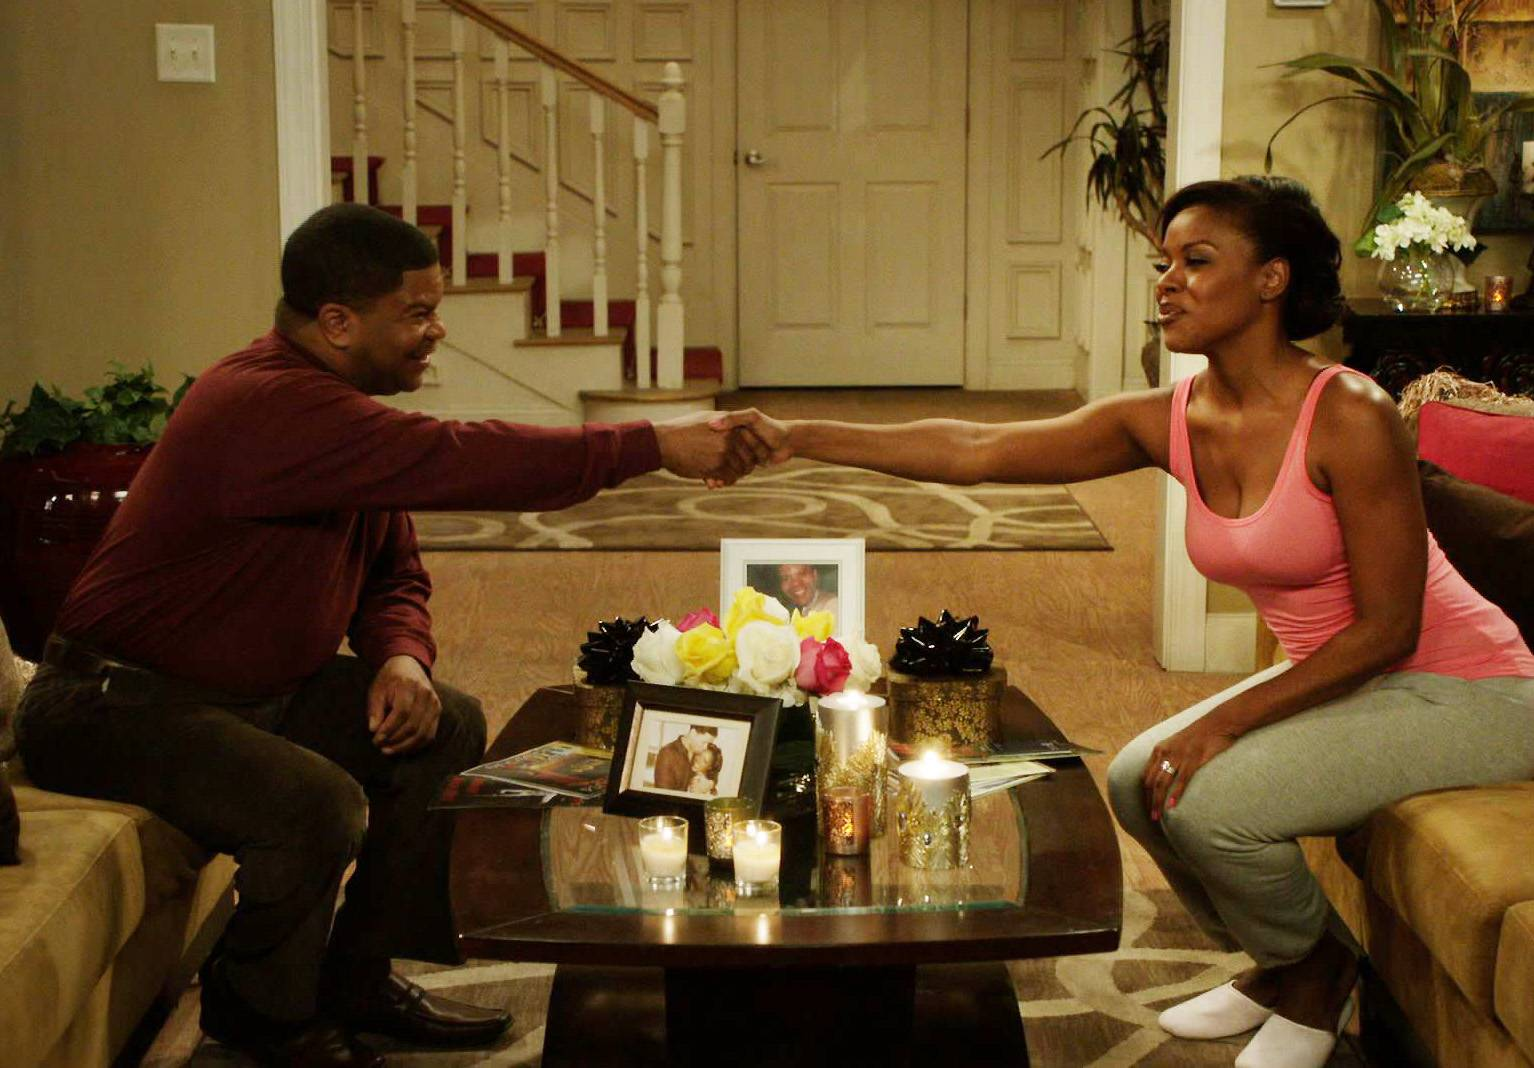 Back Together - So Charles reunites Stacy with her boo, Dr. Sutton. (Photo: BET)